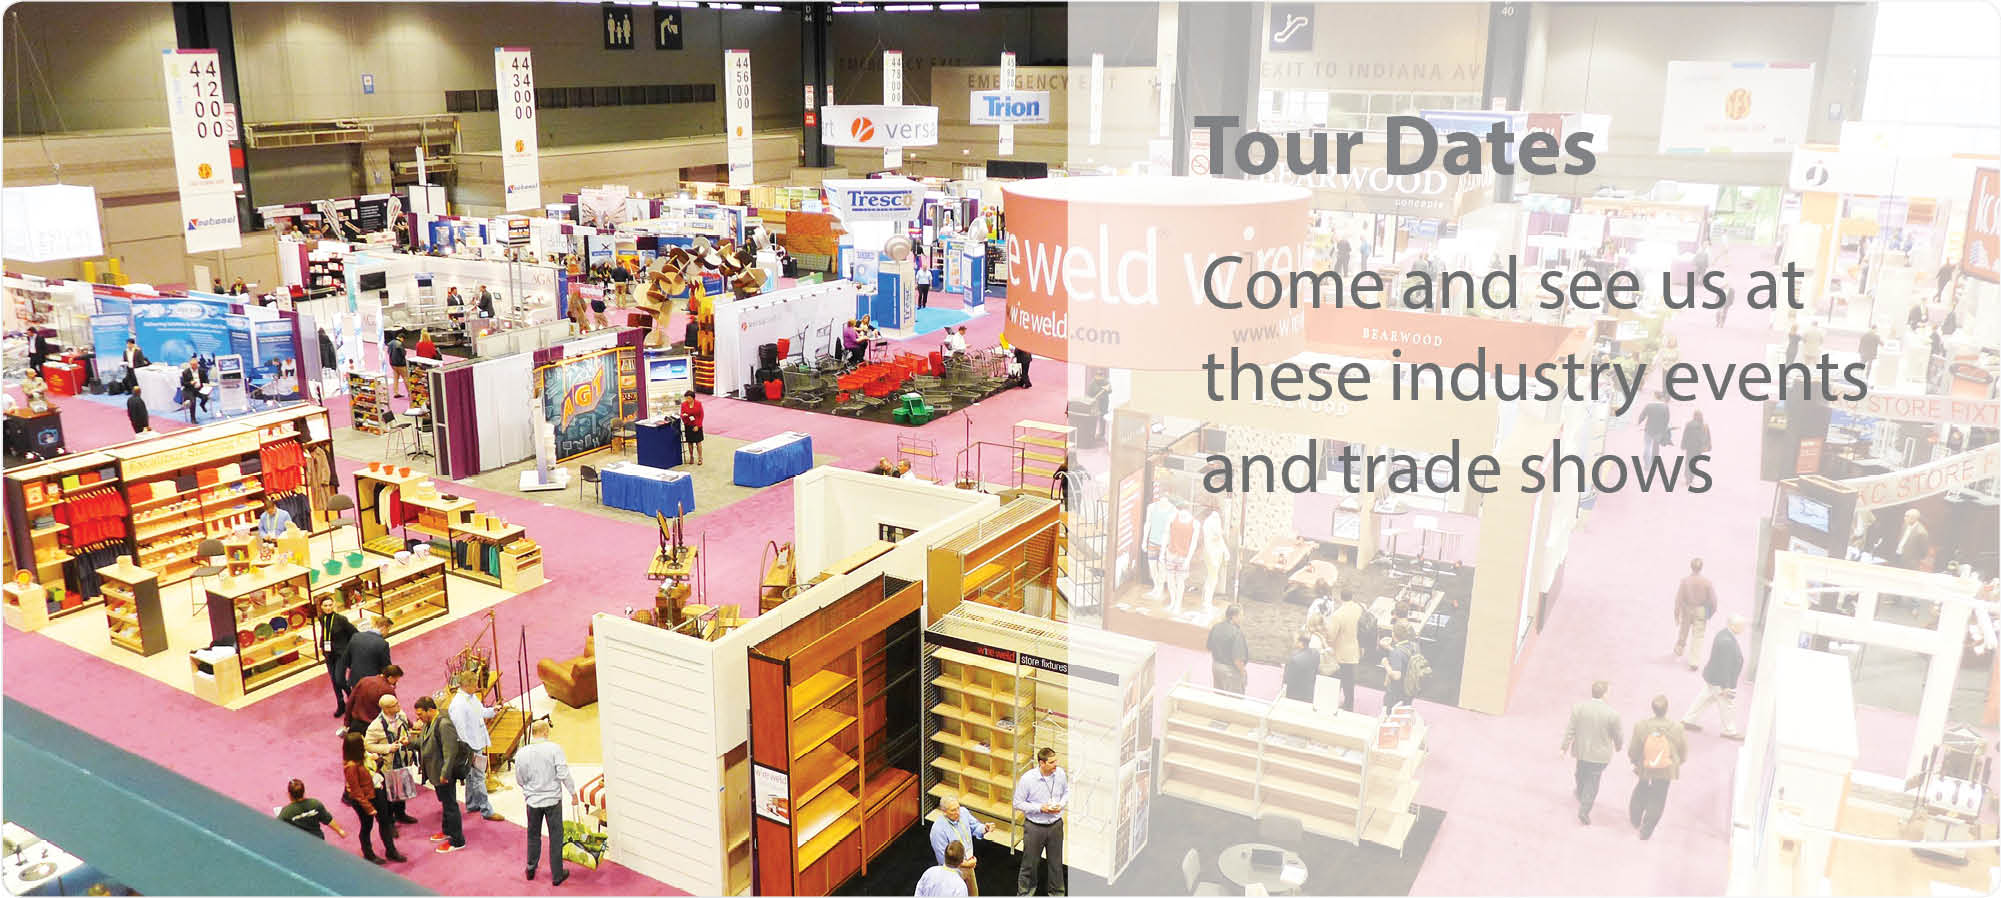 Image of a trade show as seen from above, Versacart booth can be seen in amongst other trade show booths.